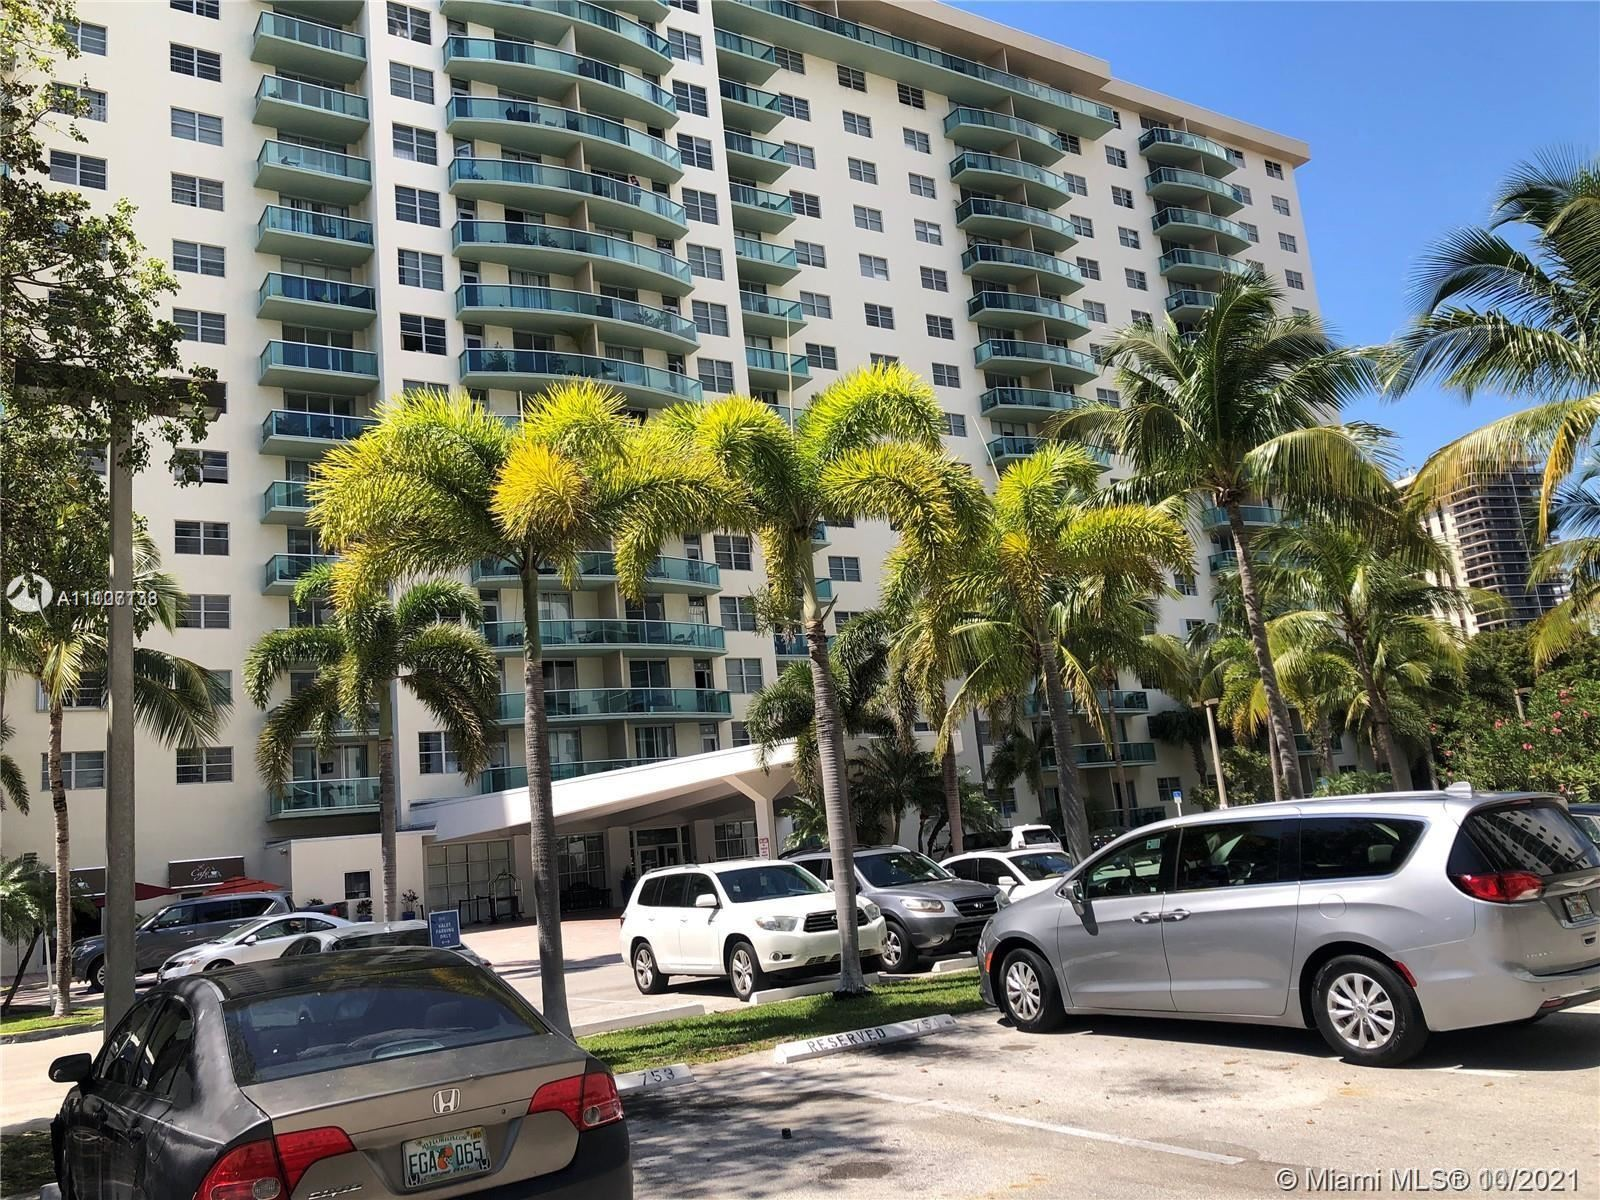 19390 Collins Ave #216, Sunny Isles, FL 33160 - #: A11107138